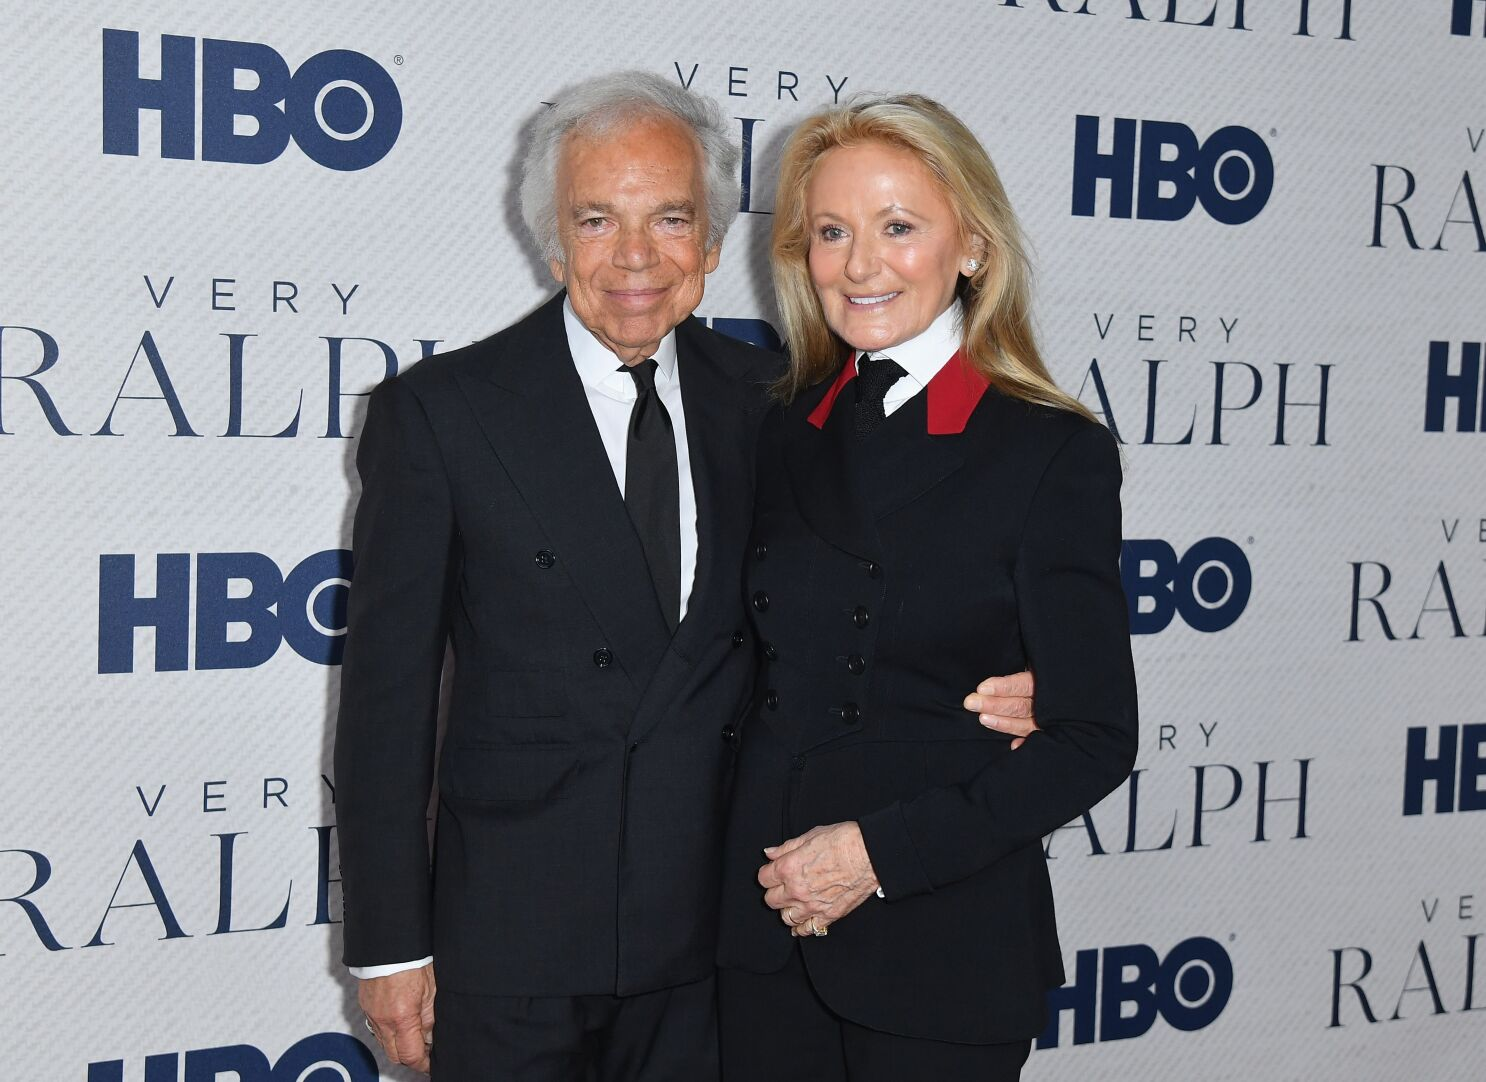 5 Fun Facts From The New Ralph Lauren Hbo Documentary Los Angeles Times